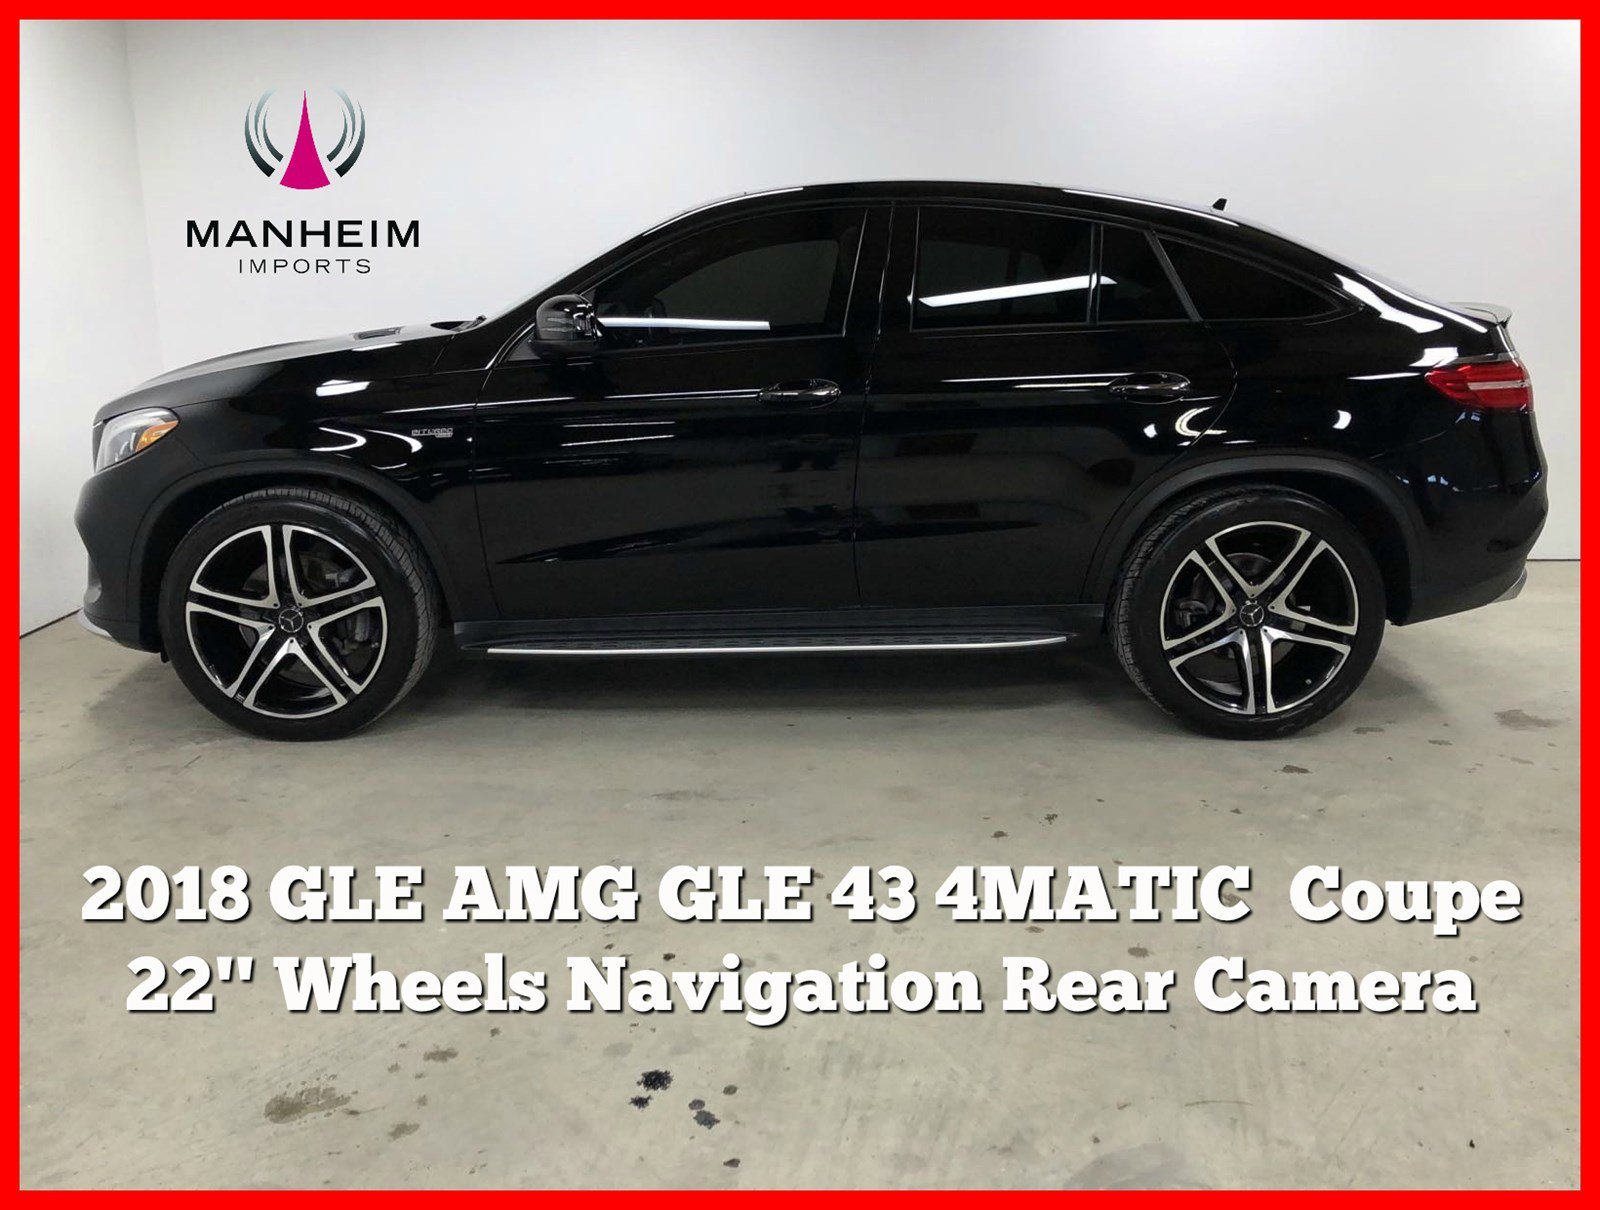 Pre-Owned 2018 Mercedes-Benz GLE AMG® GLE 43 4MATIC Coupe